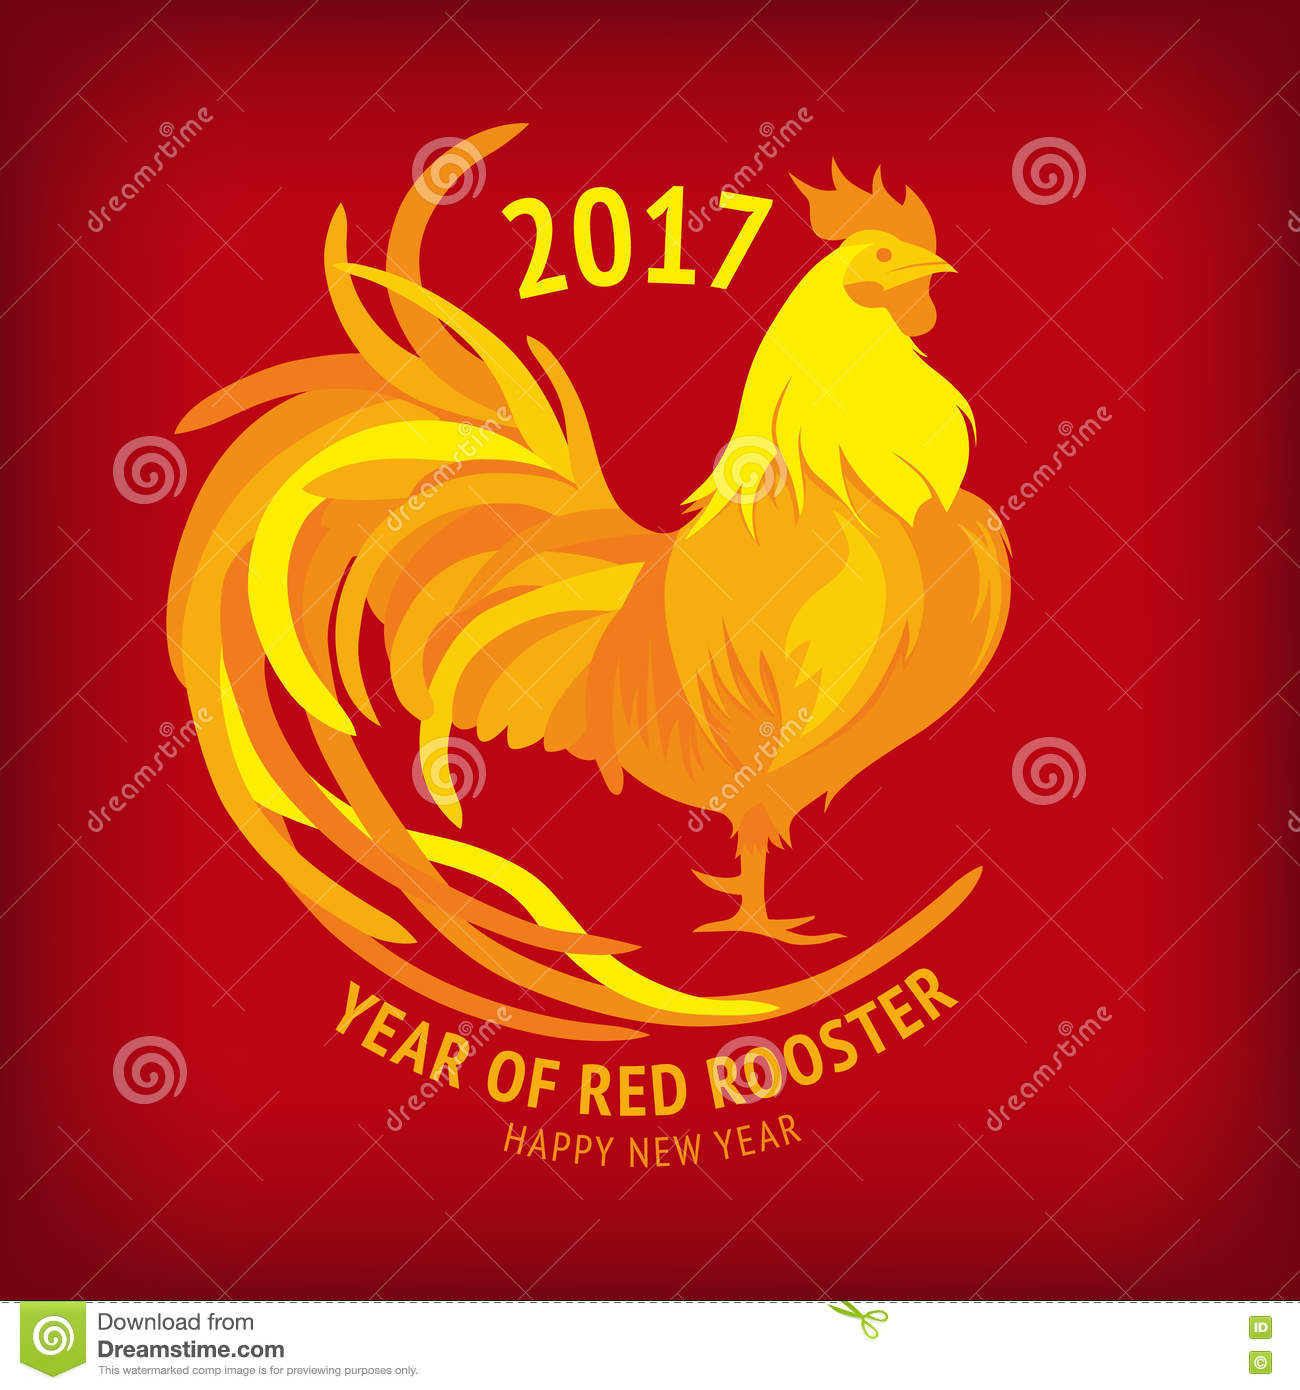 New year 2017 greeting pictures year of rooster happy chinese new year - Red Rooster Happy Chinese New Year 2017 Vector Royalty Free Stock Image